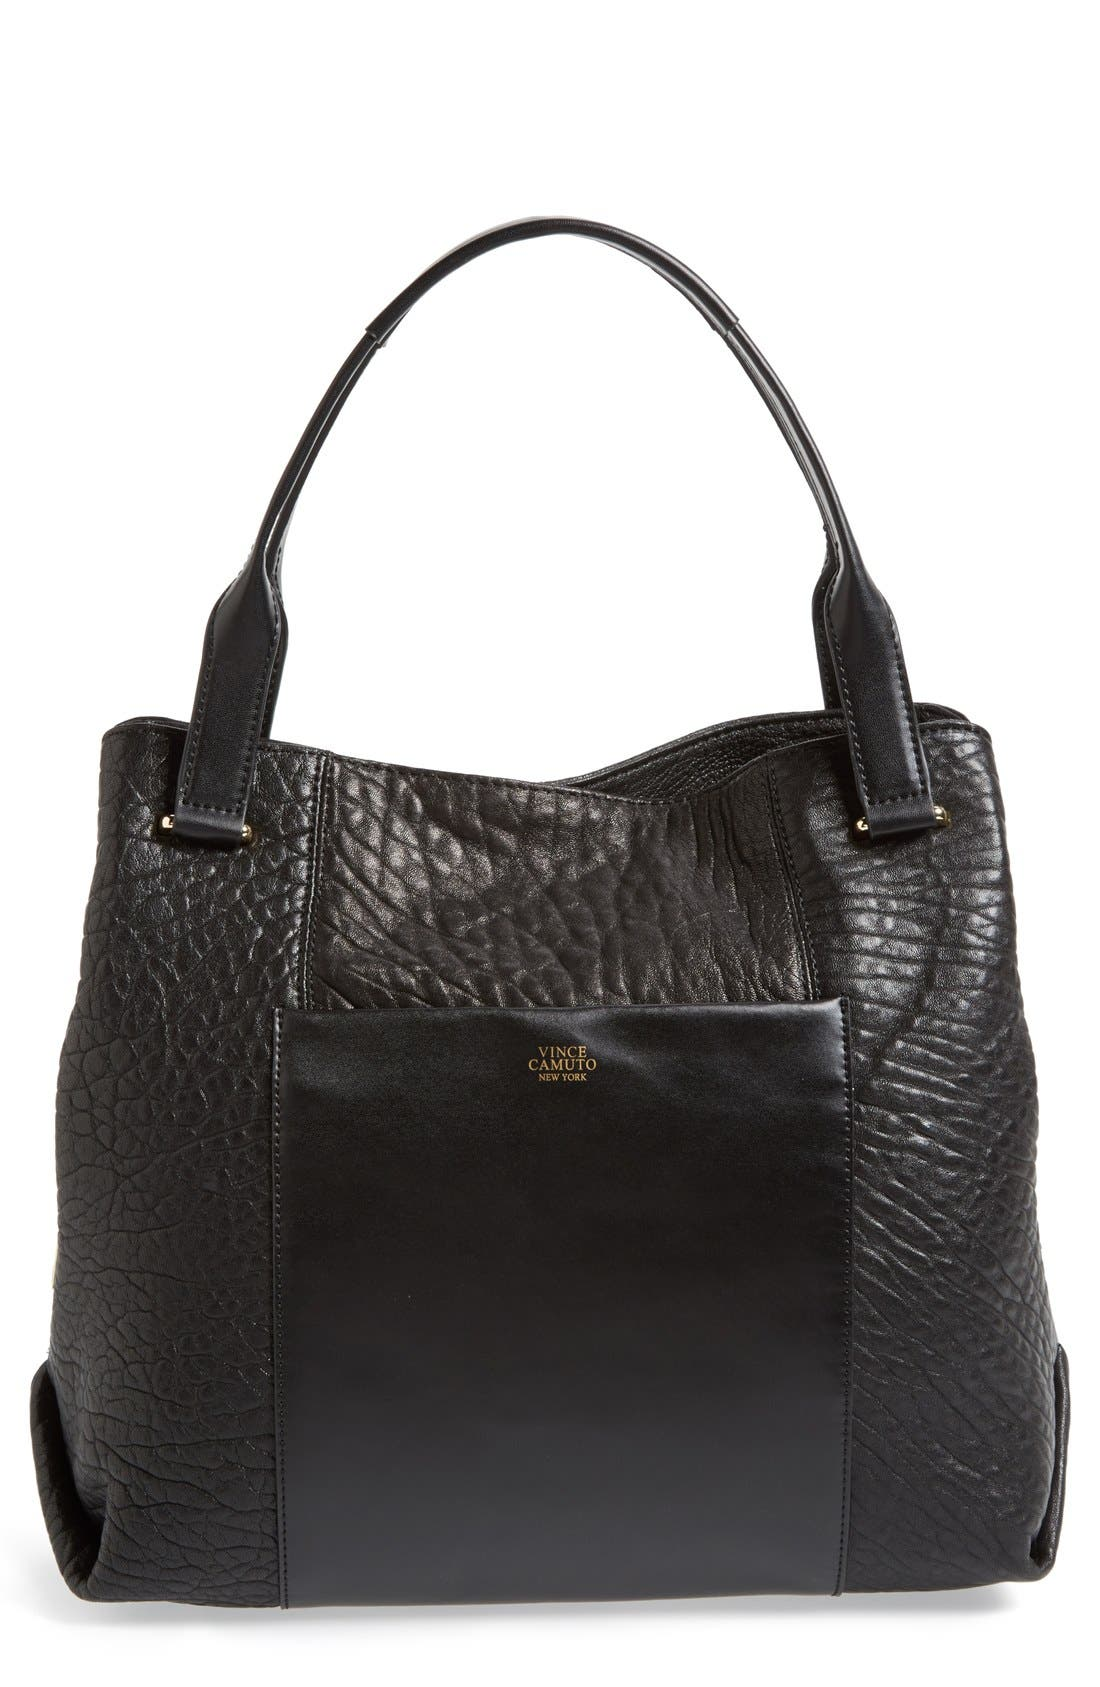 Main Image - Vince Camuto 'Maron' Leather Tote